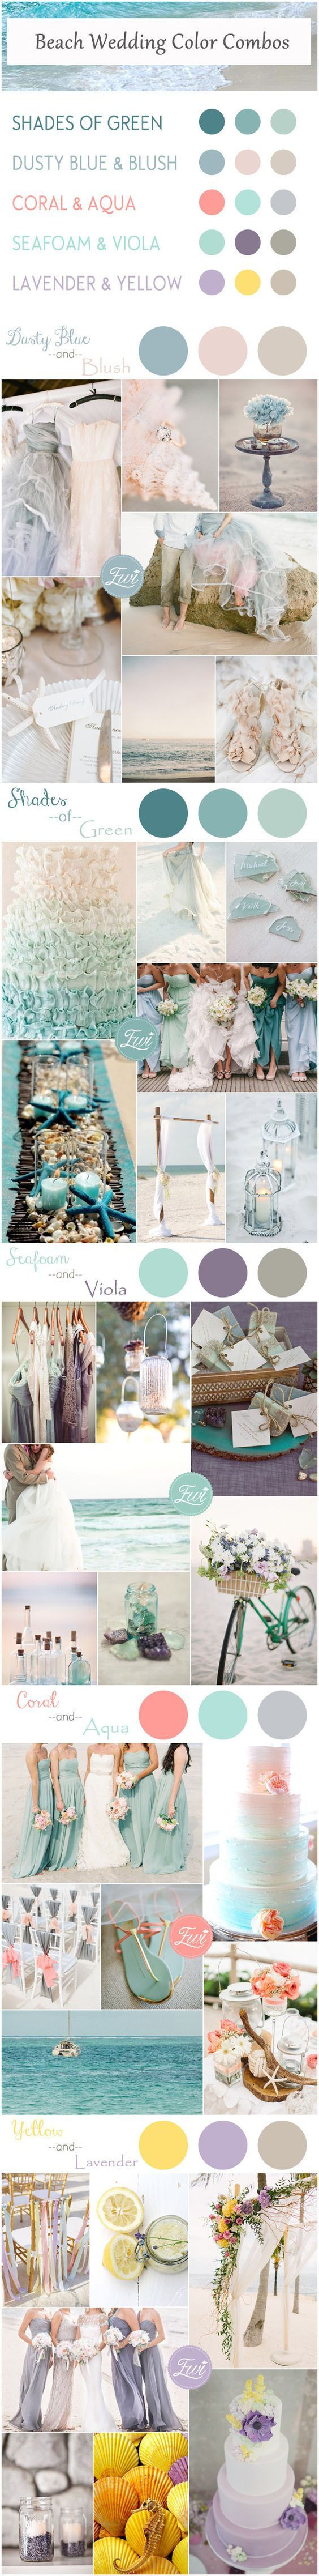 Beach Wedding Color Combos